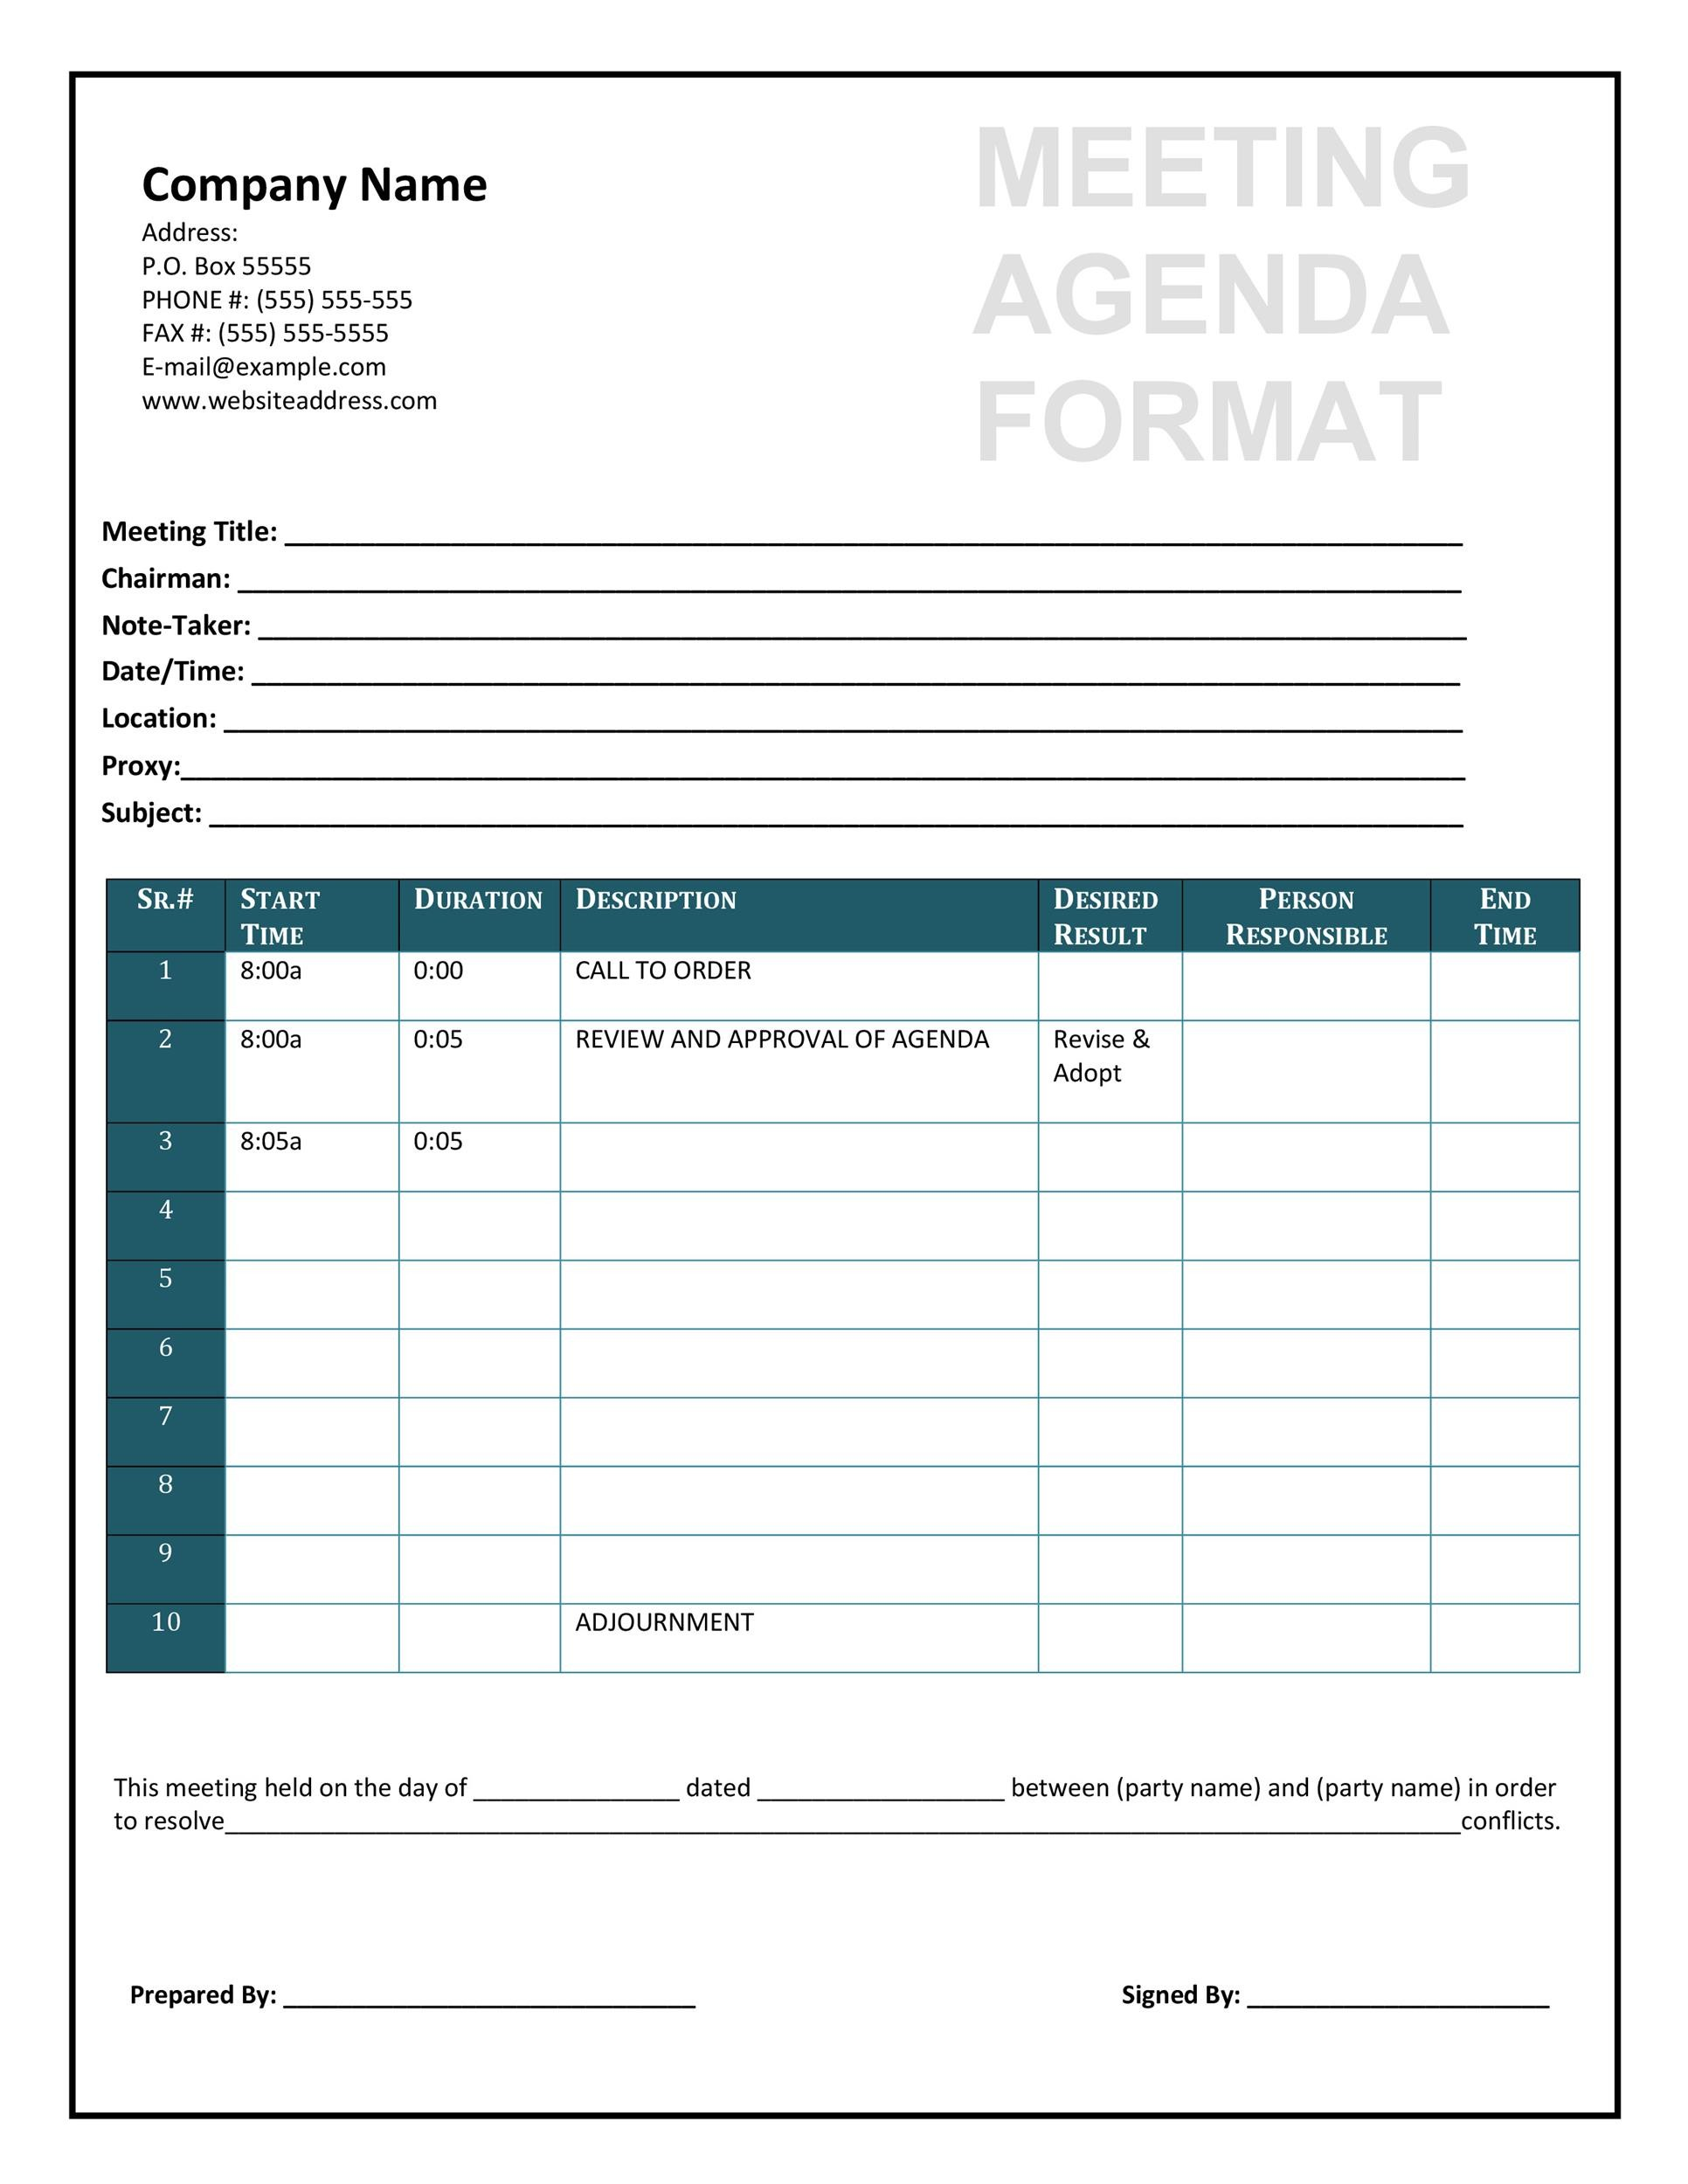 School Conference Agenda Template School Agenda 6 Free Samples – Agenda Format for Meetings